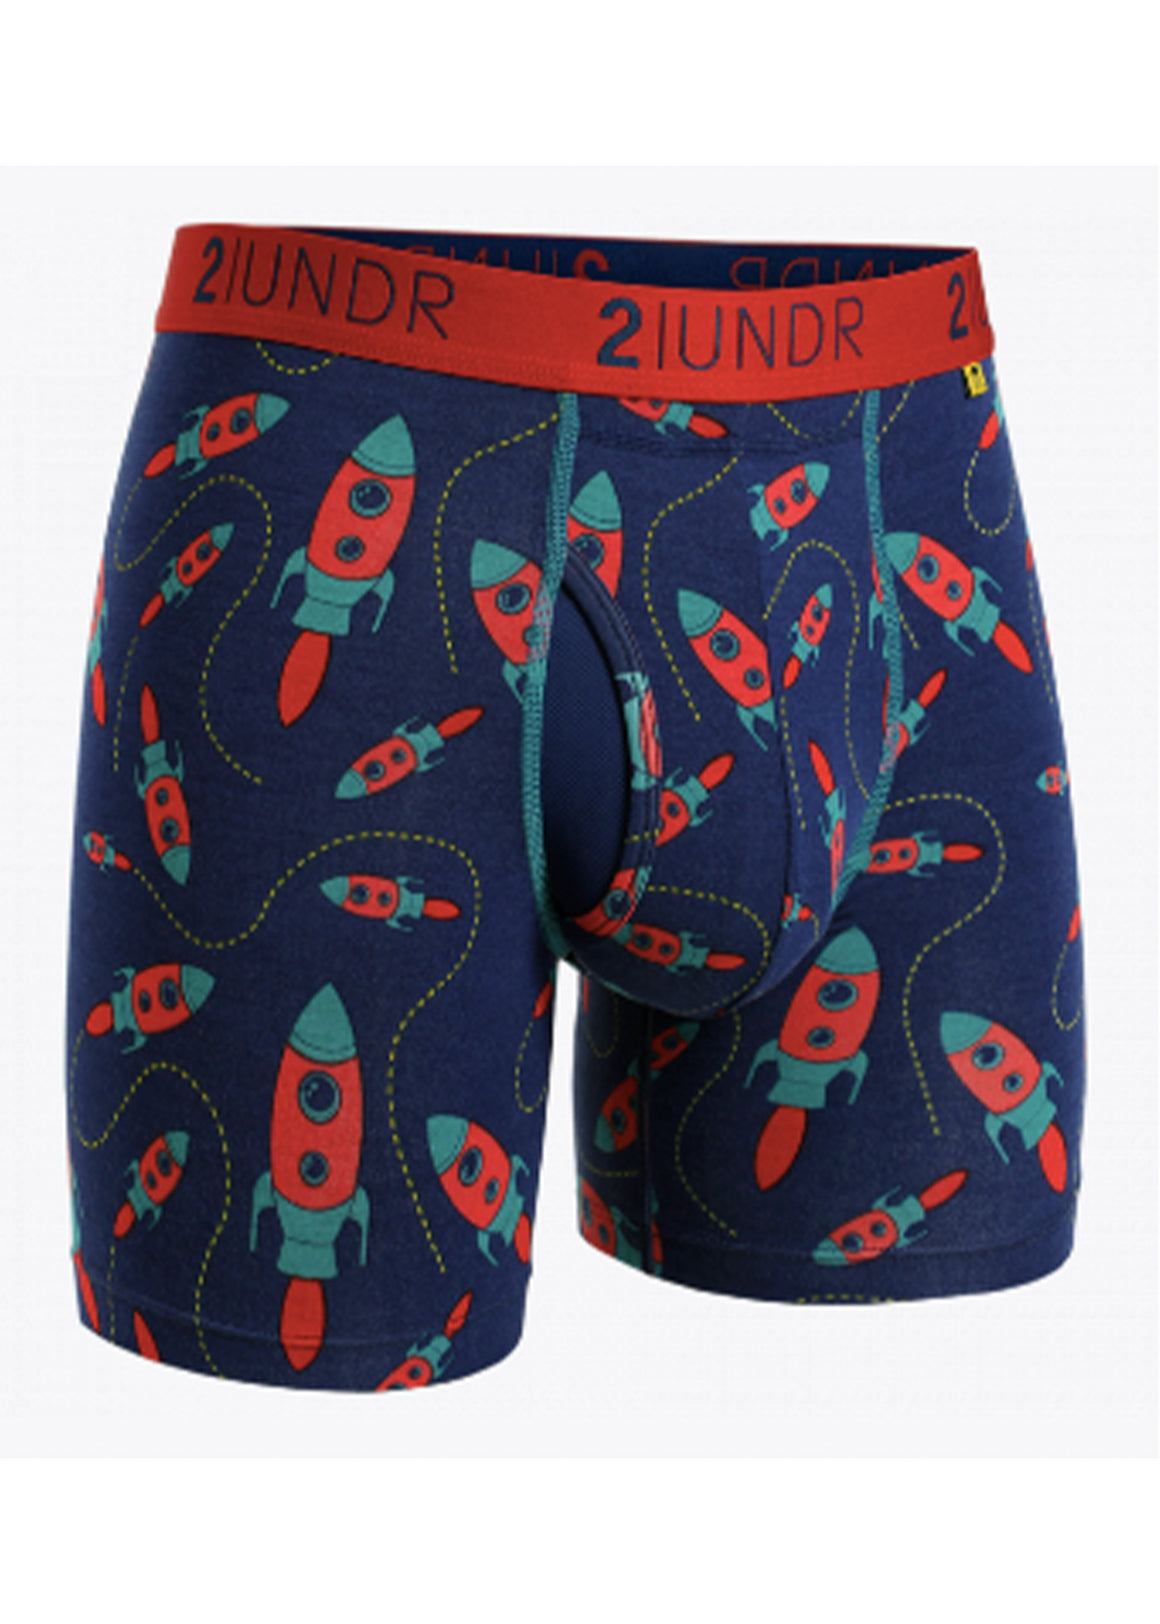 2 UNDR Swing Shift 6 Inch Boxer Brief | Rockets